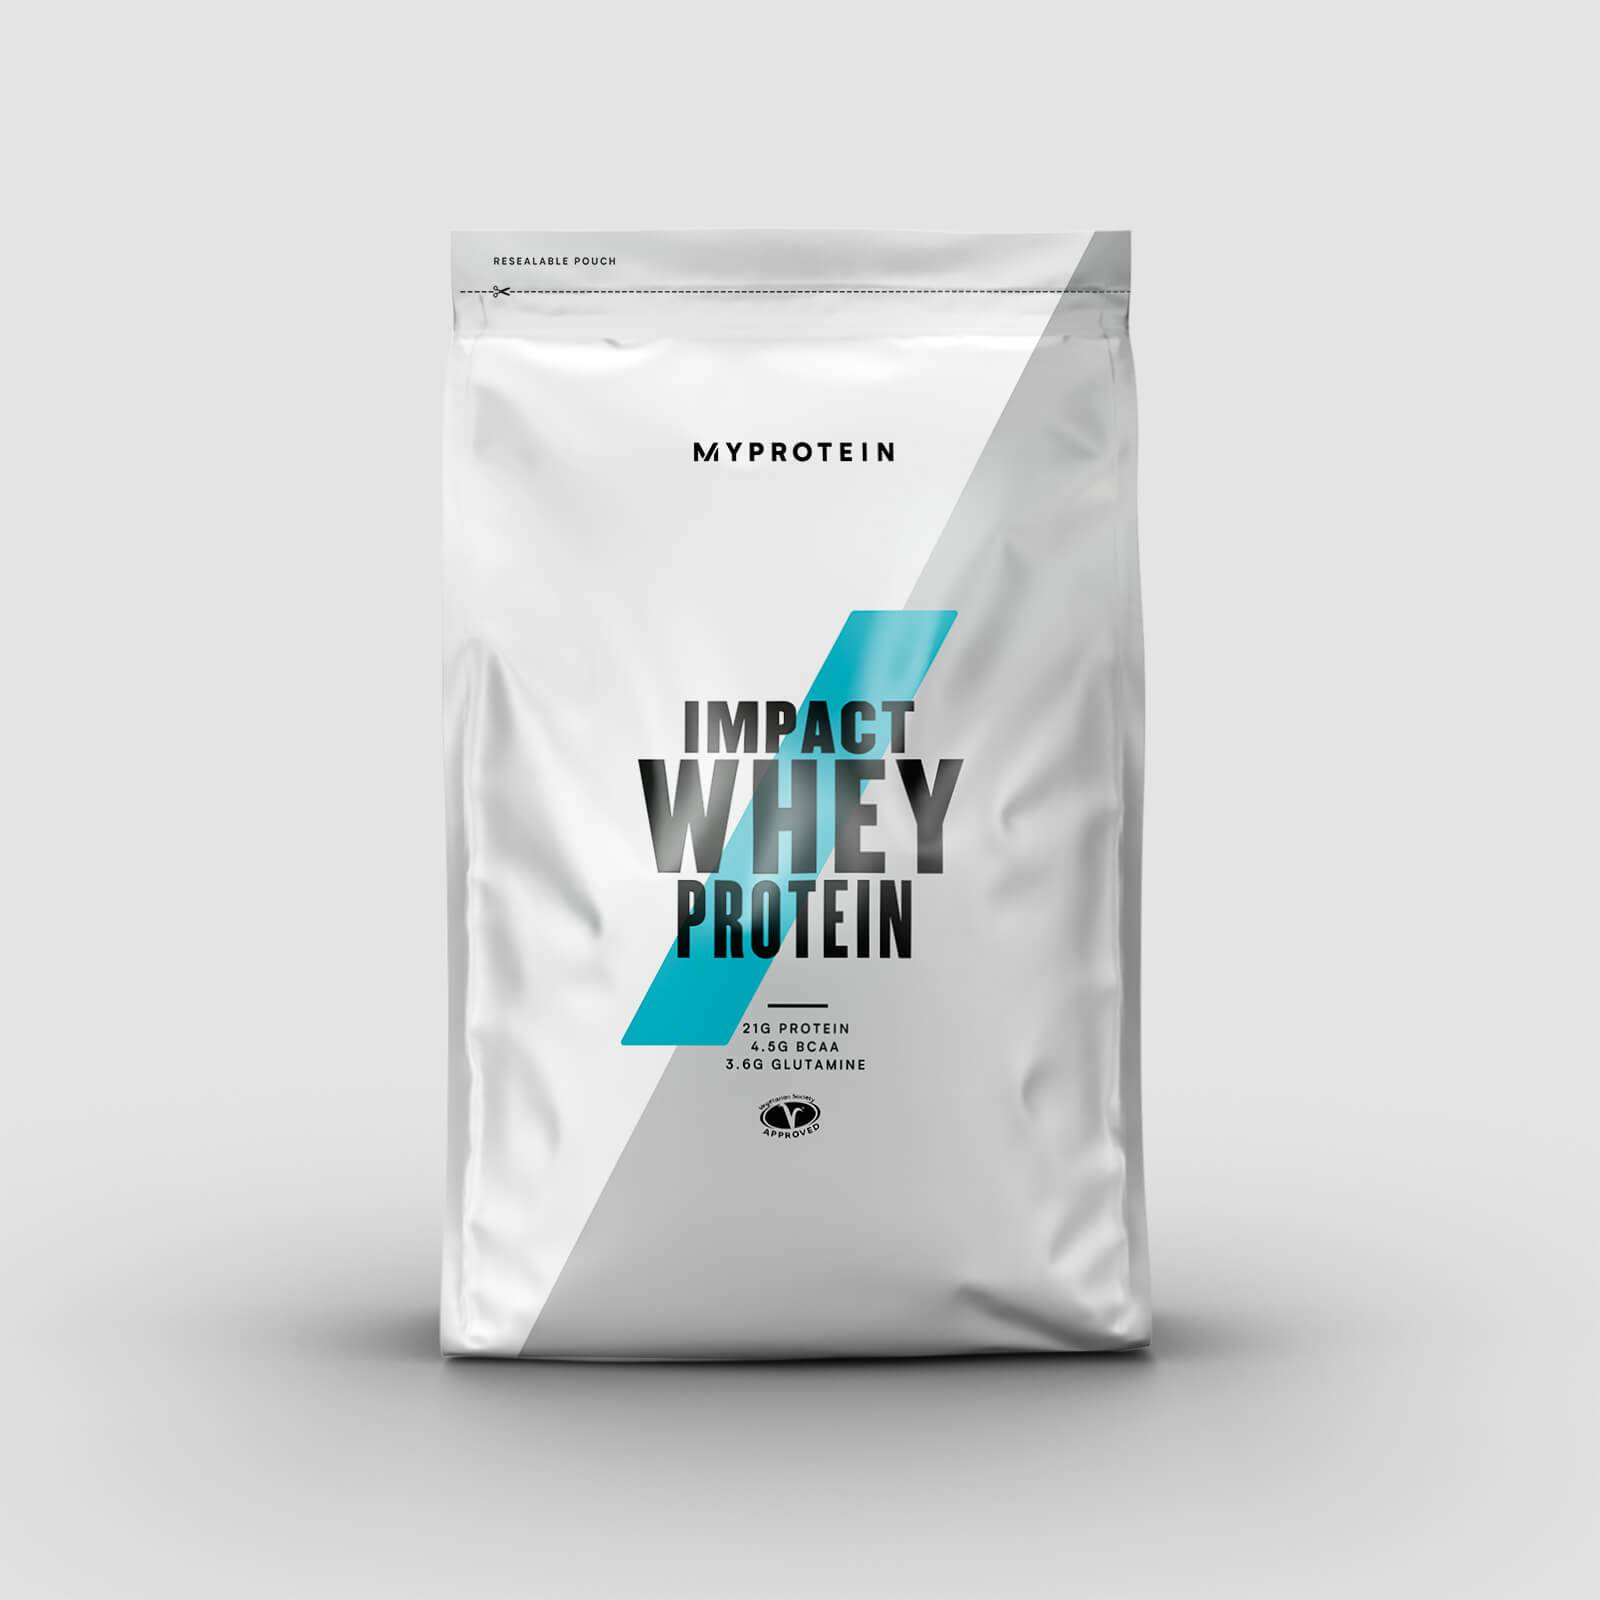 Myprotein Impact Whey Protein - 5kg - Chocolate Coconut - New and Improved